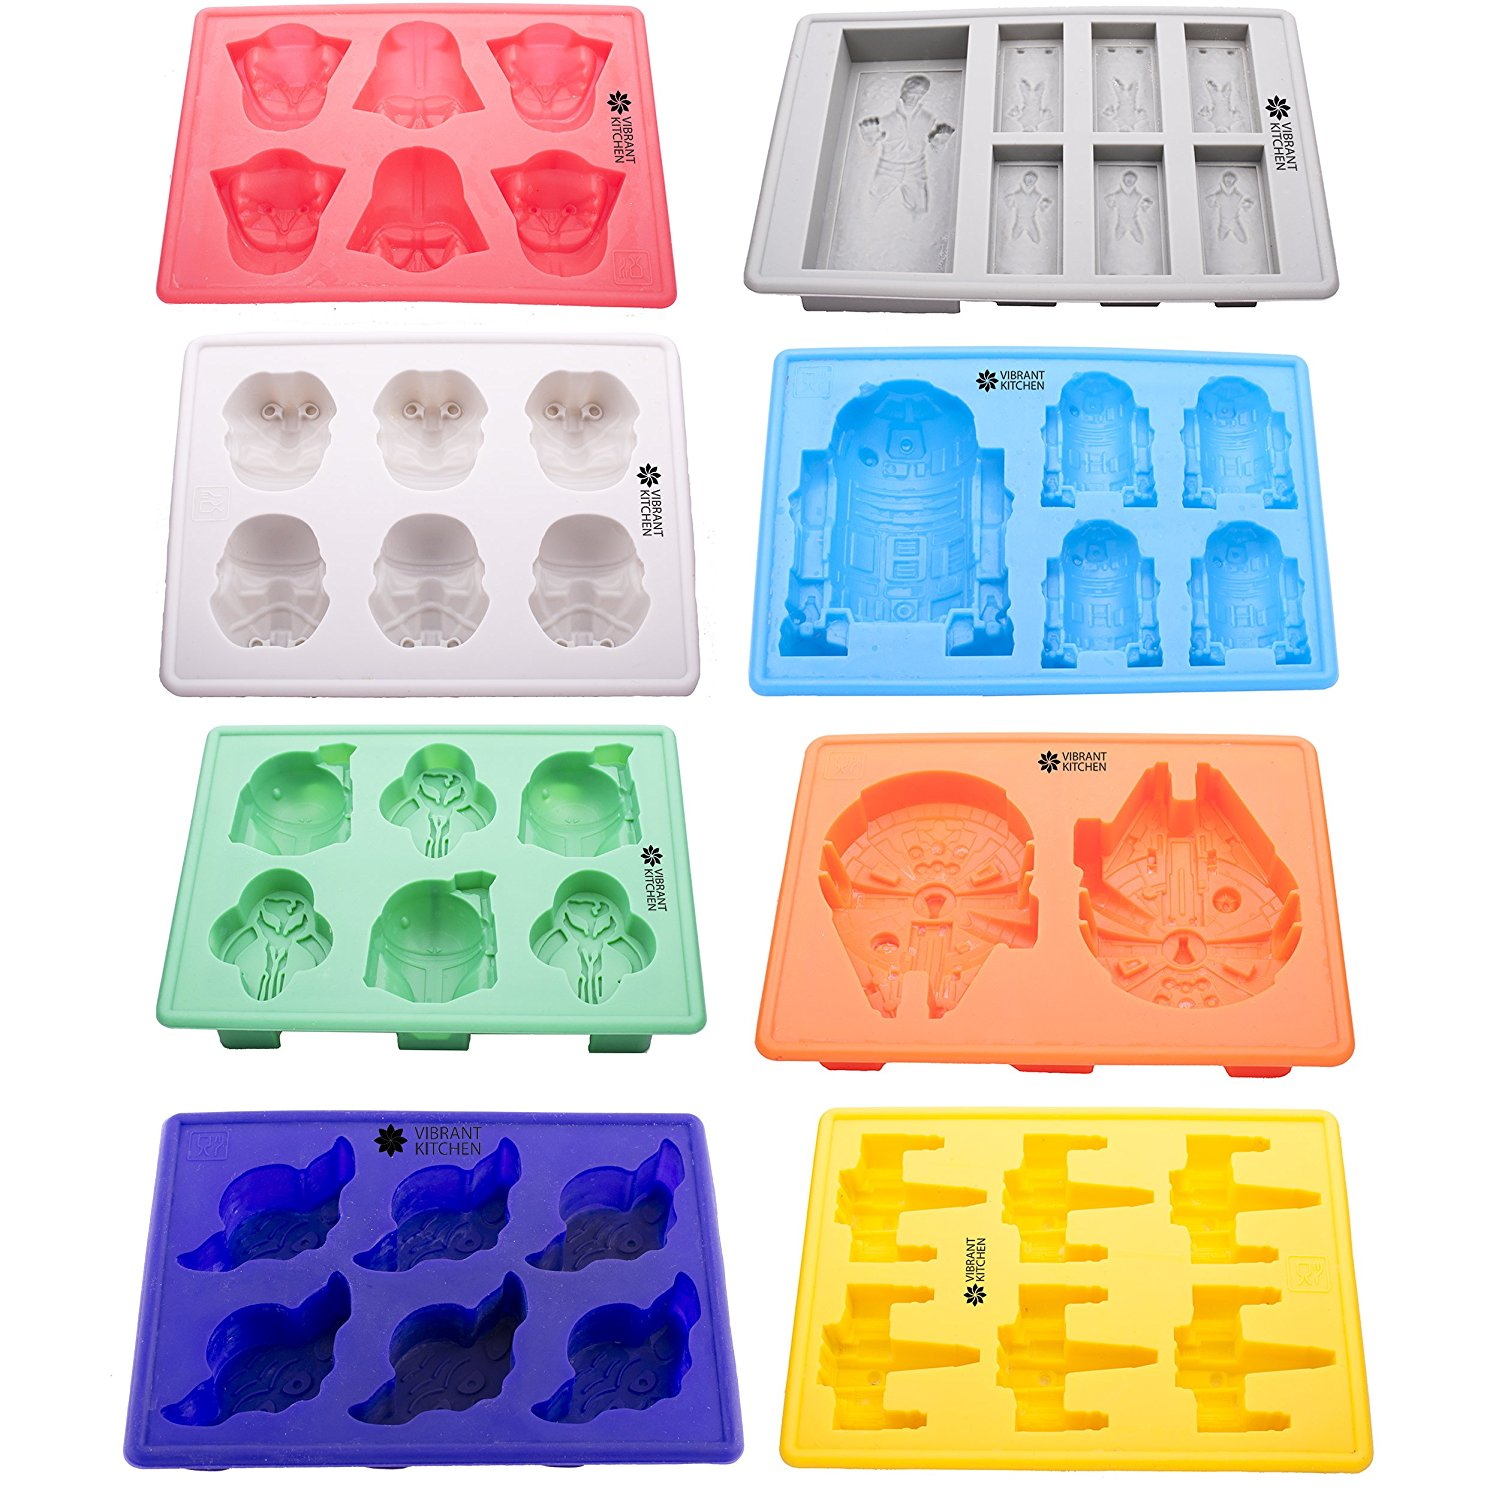 Star Wars silicone ice tray candy mold